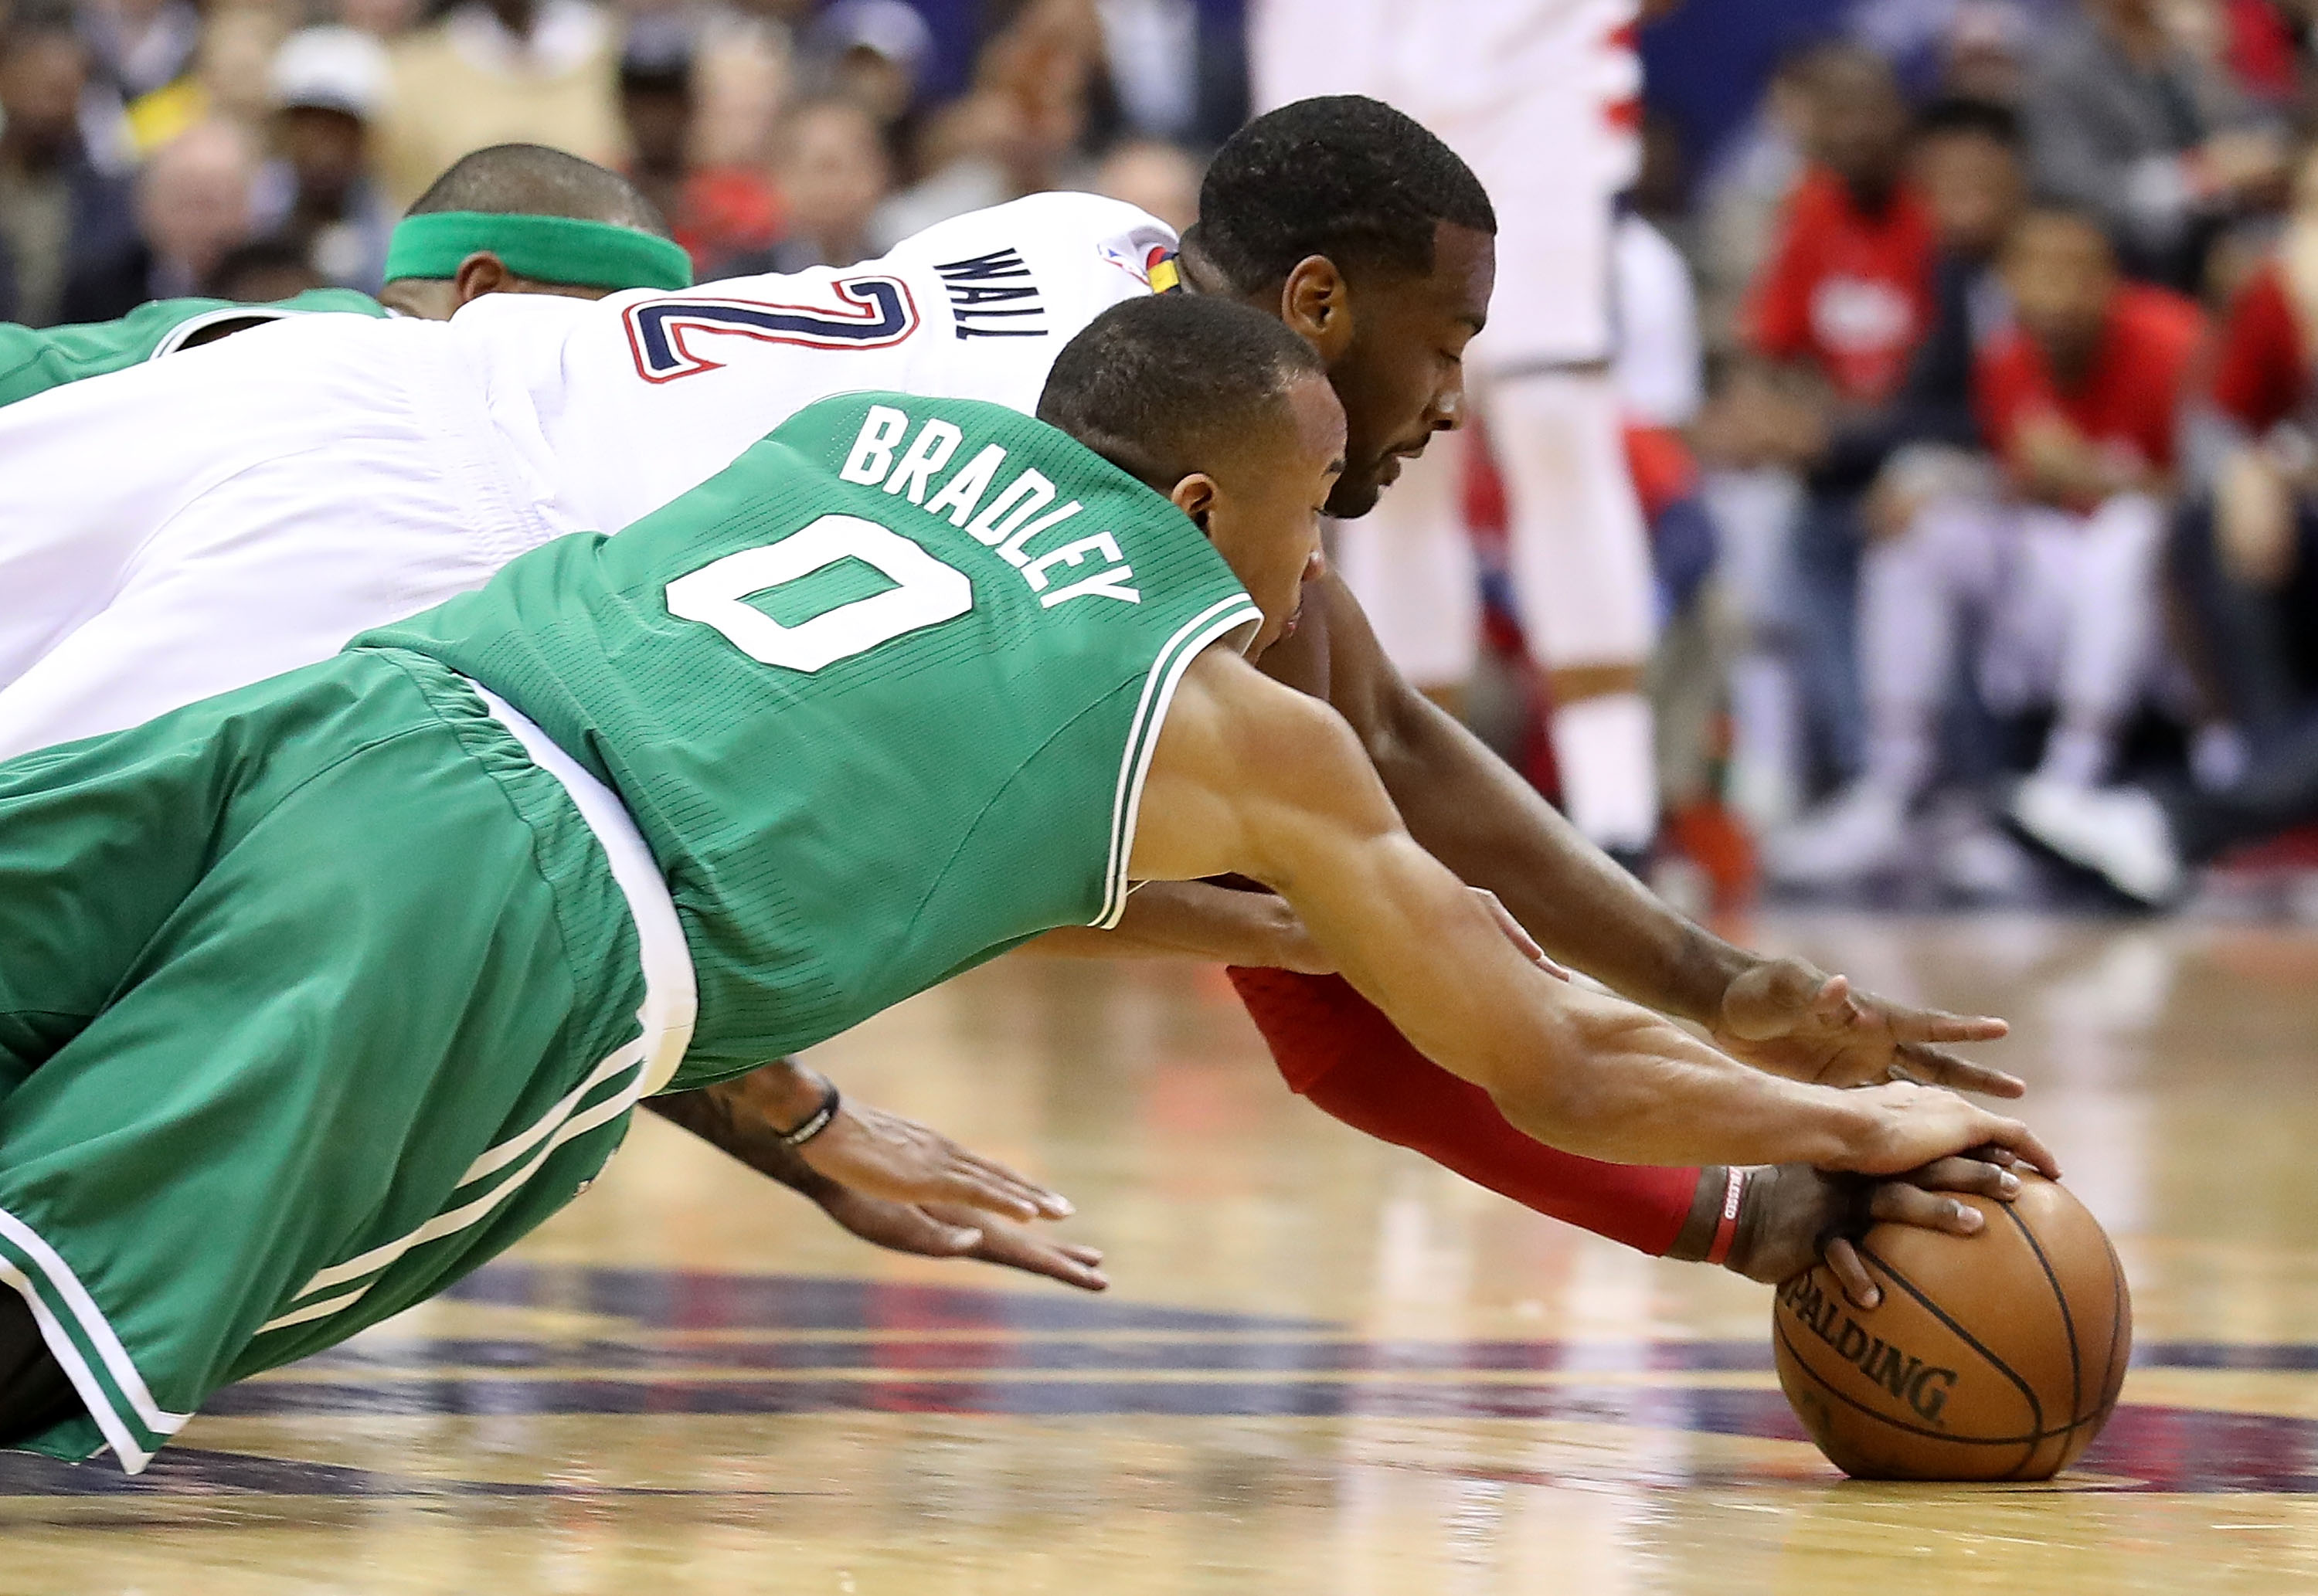 Boston Celtics bailed out by Canadian Kelly Olynyk in Game 7 win